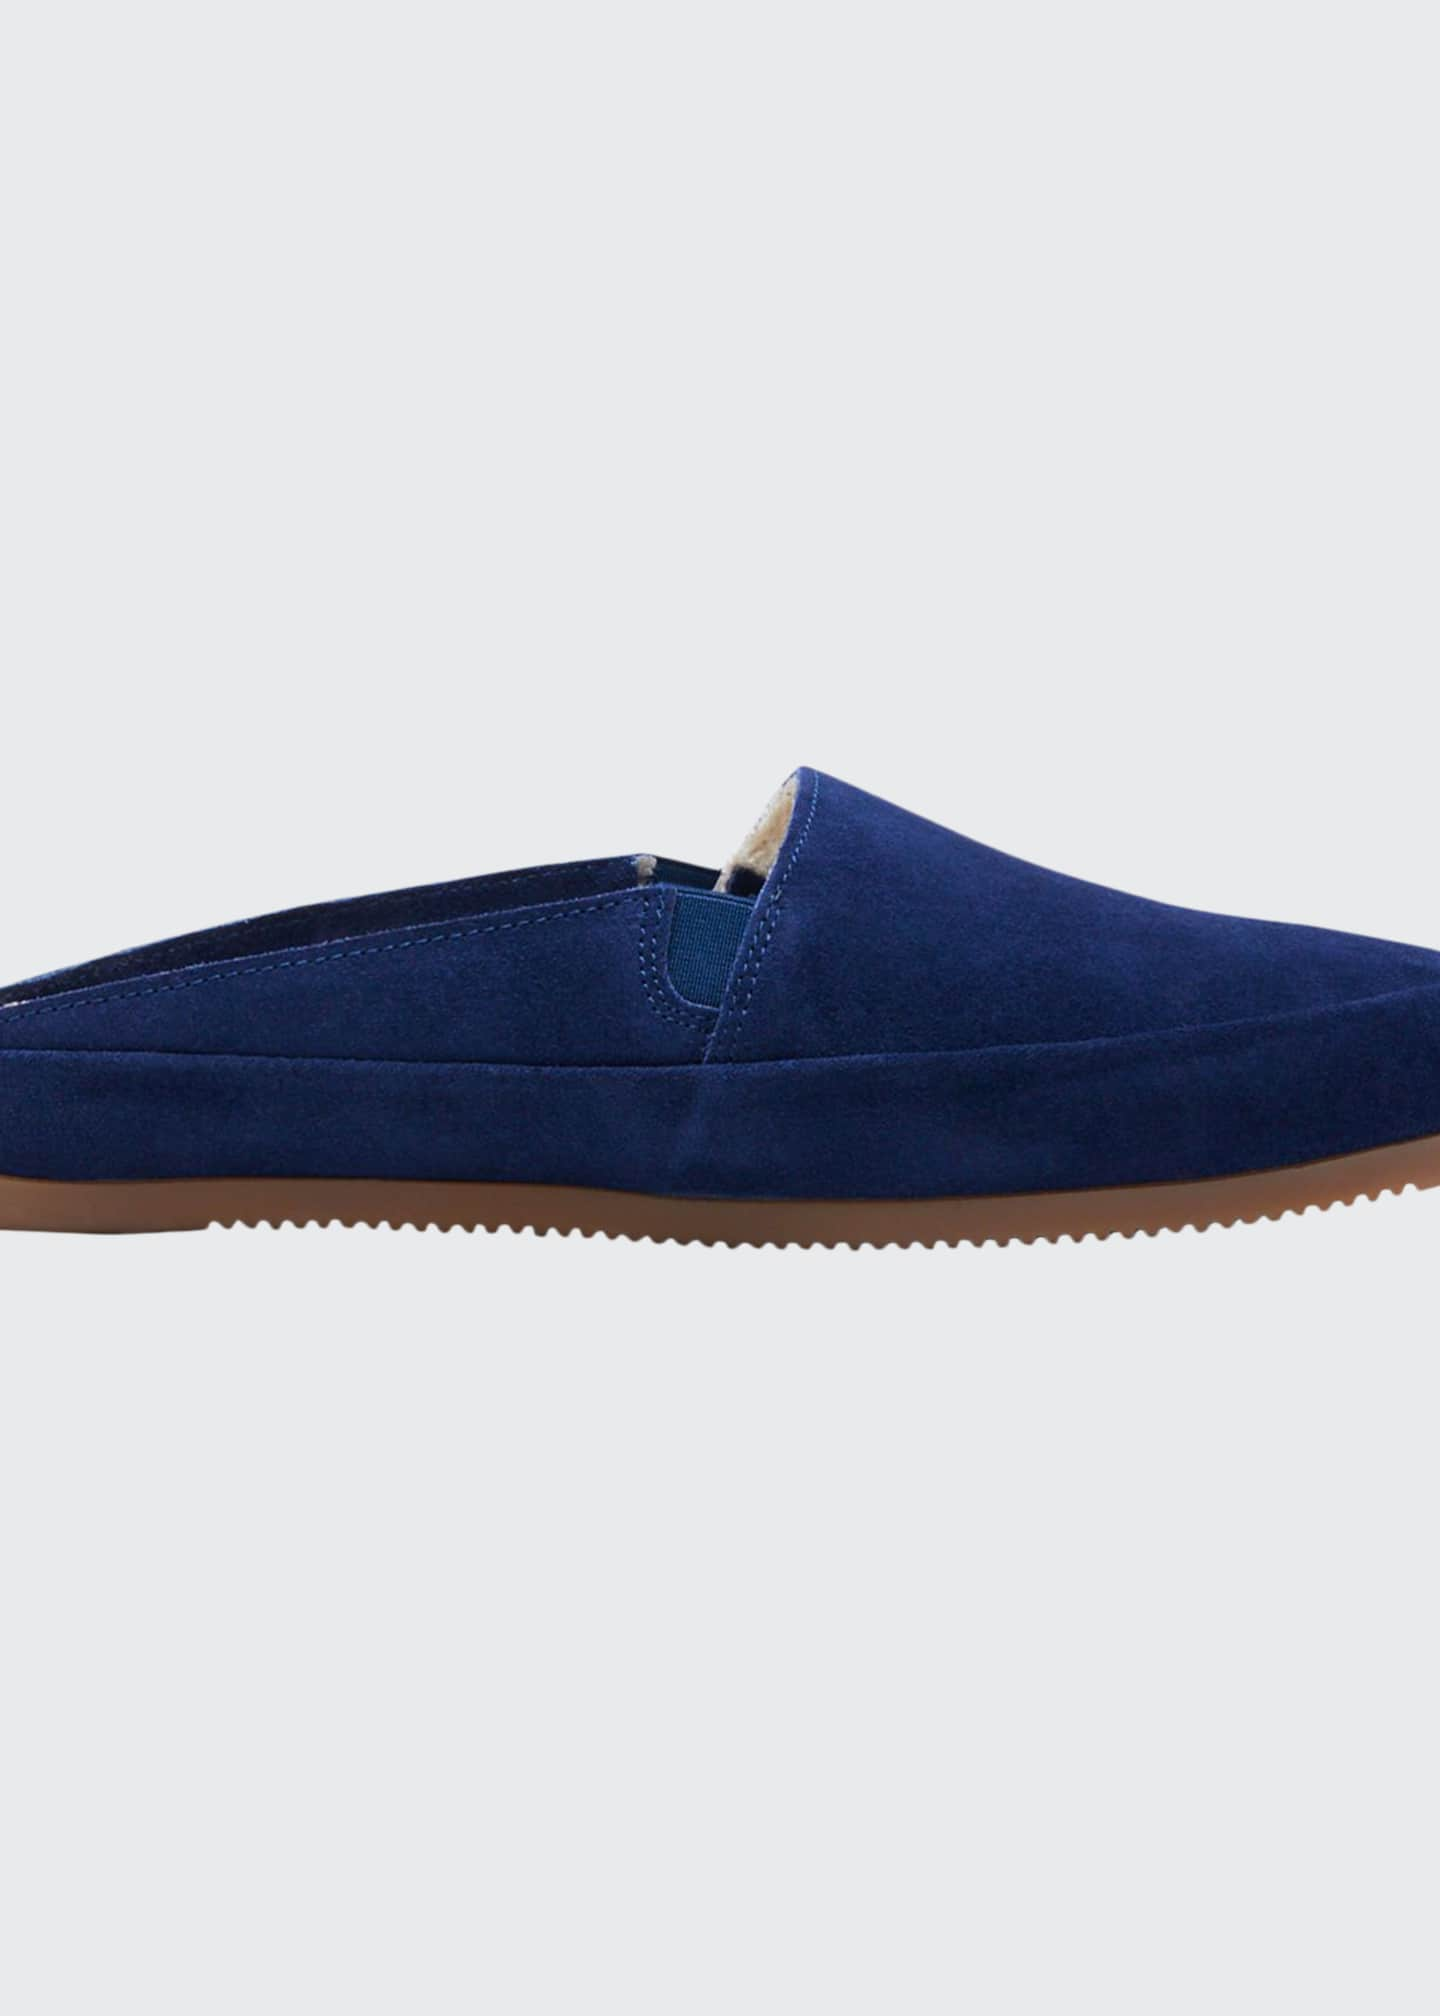 Image 1 of 3: Men's Suede Shearling Slippers